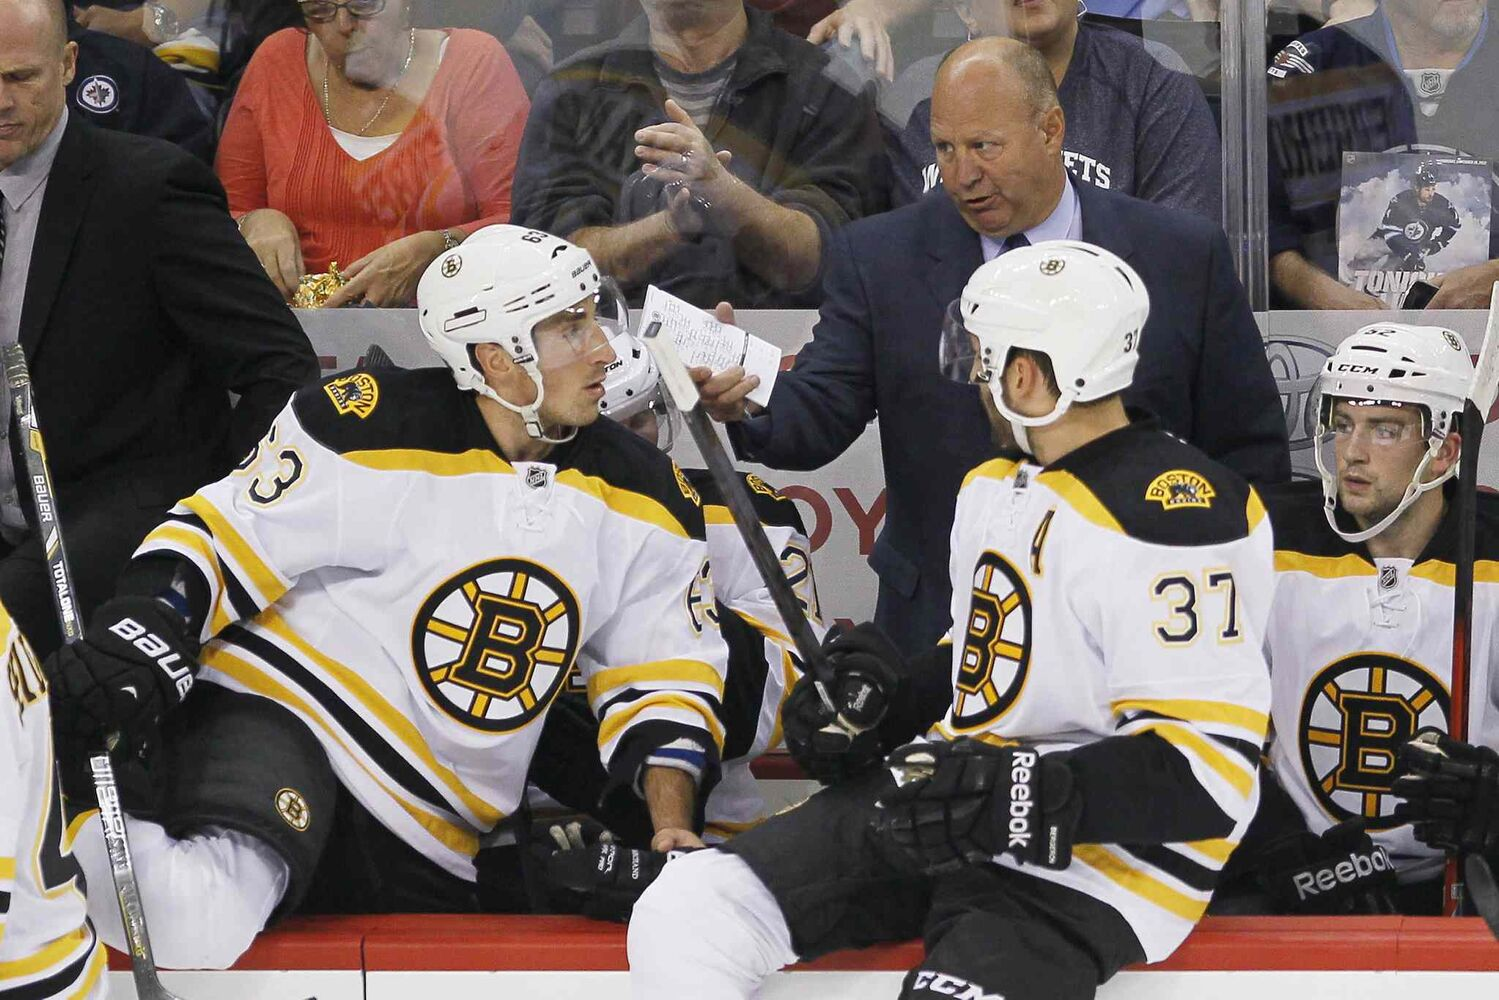 Boston Bruins head coach Claude Julien talks with Brad Marchand (63) and Patrice Bergeron (37) during a commercial break.